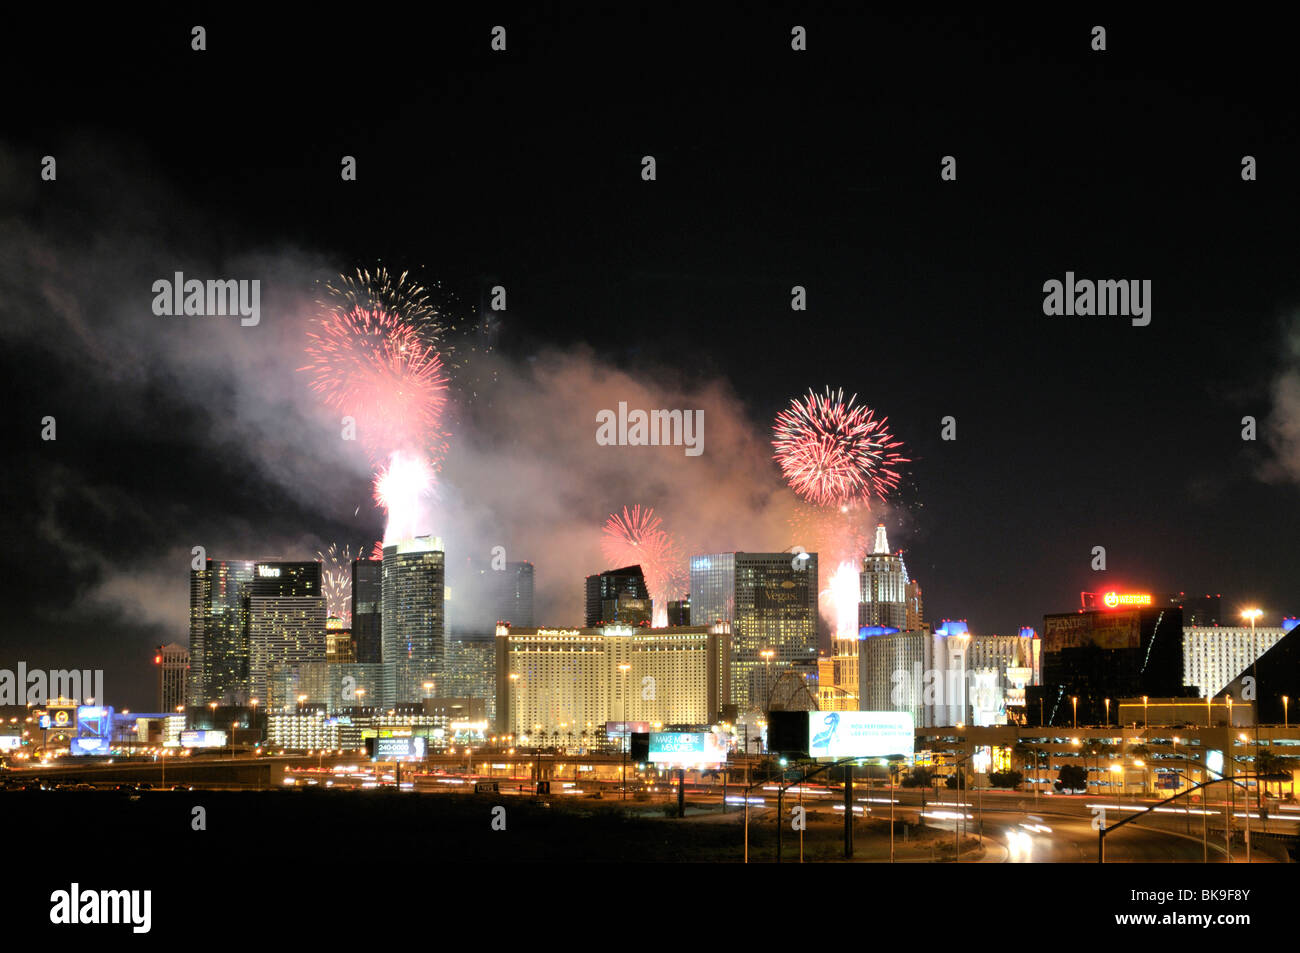 Firework display at New year's eve in a city, Las Vegas, Nevada, USA - Stock Image